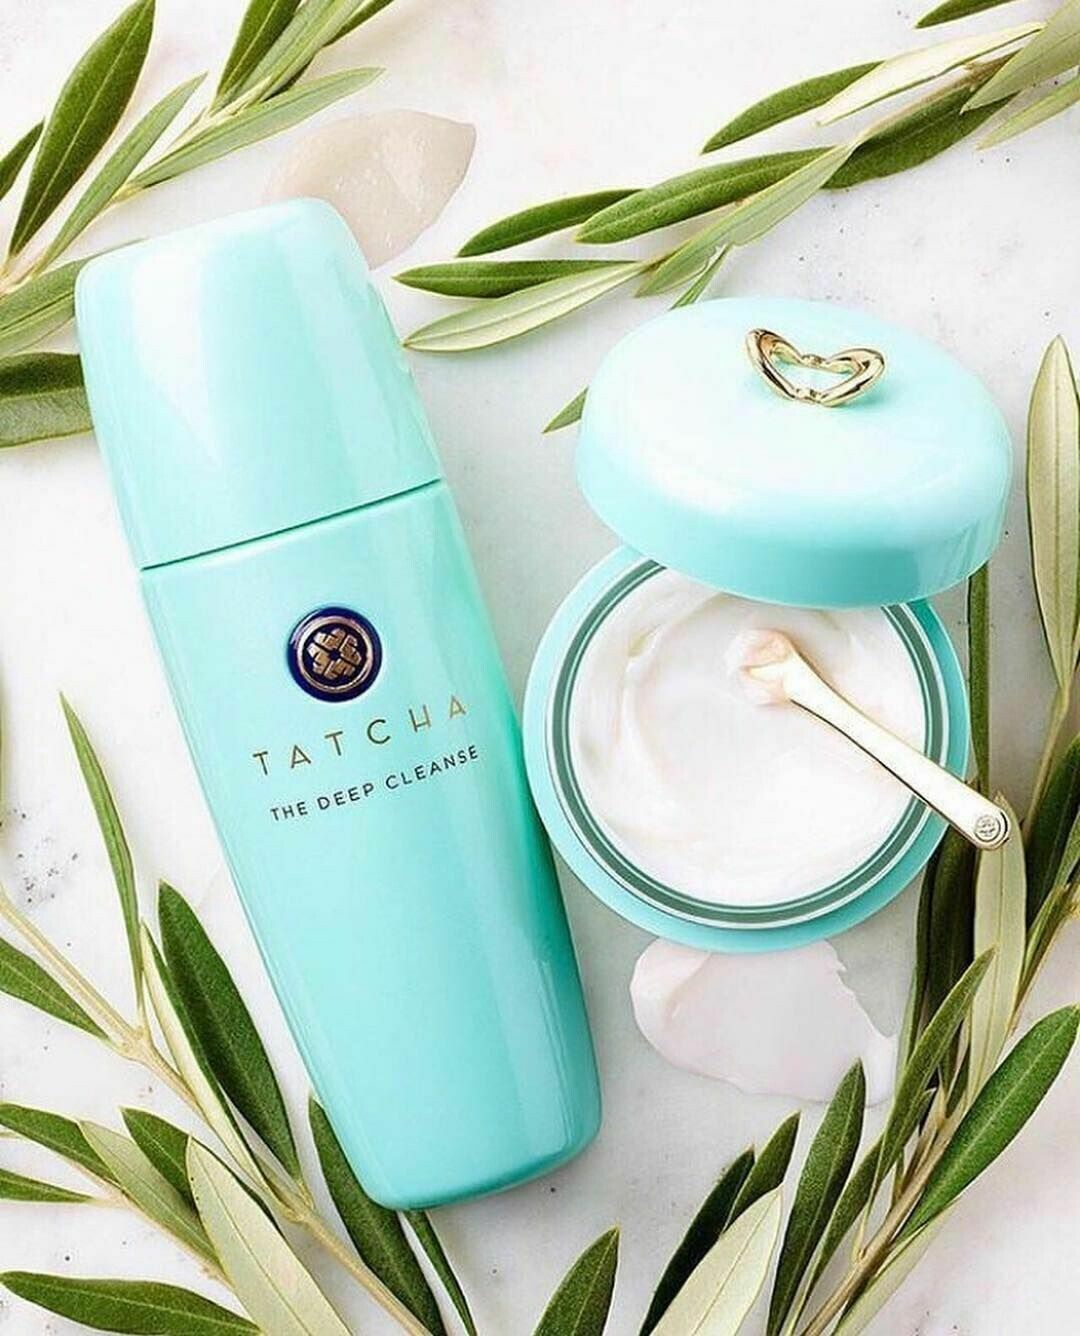 Pore-Perfecting Moisturizer & Cleanser Duo TATCHA